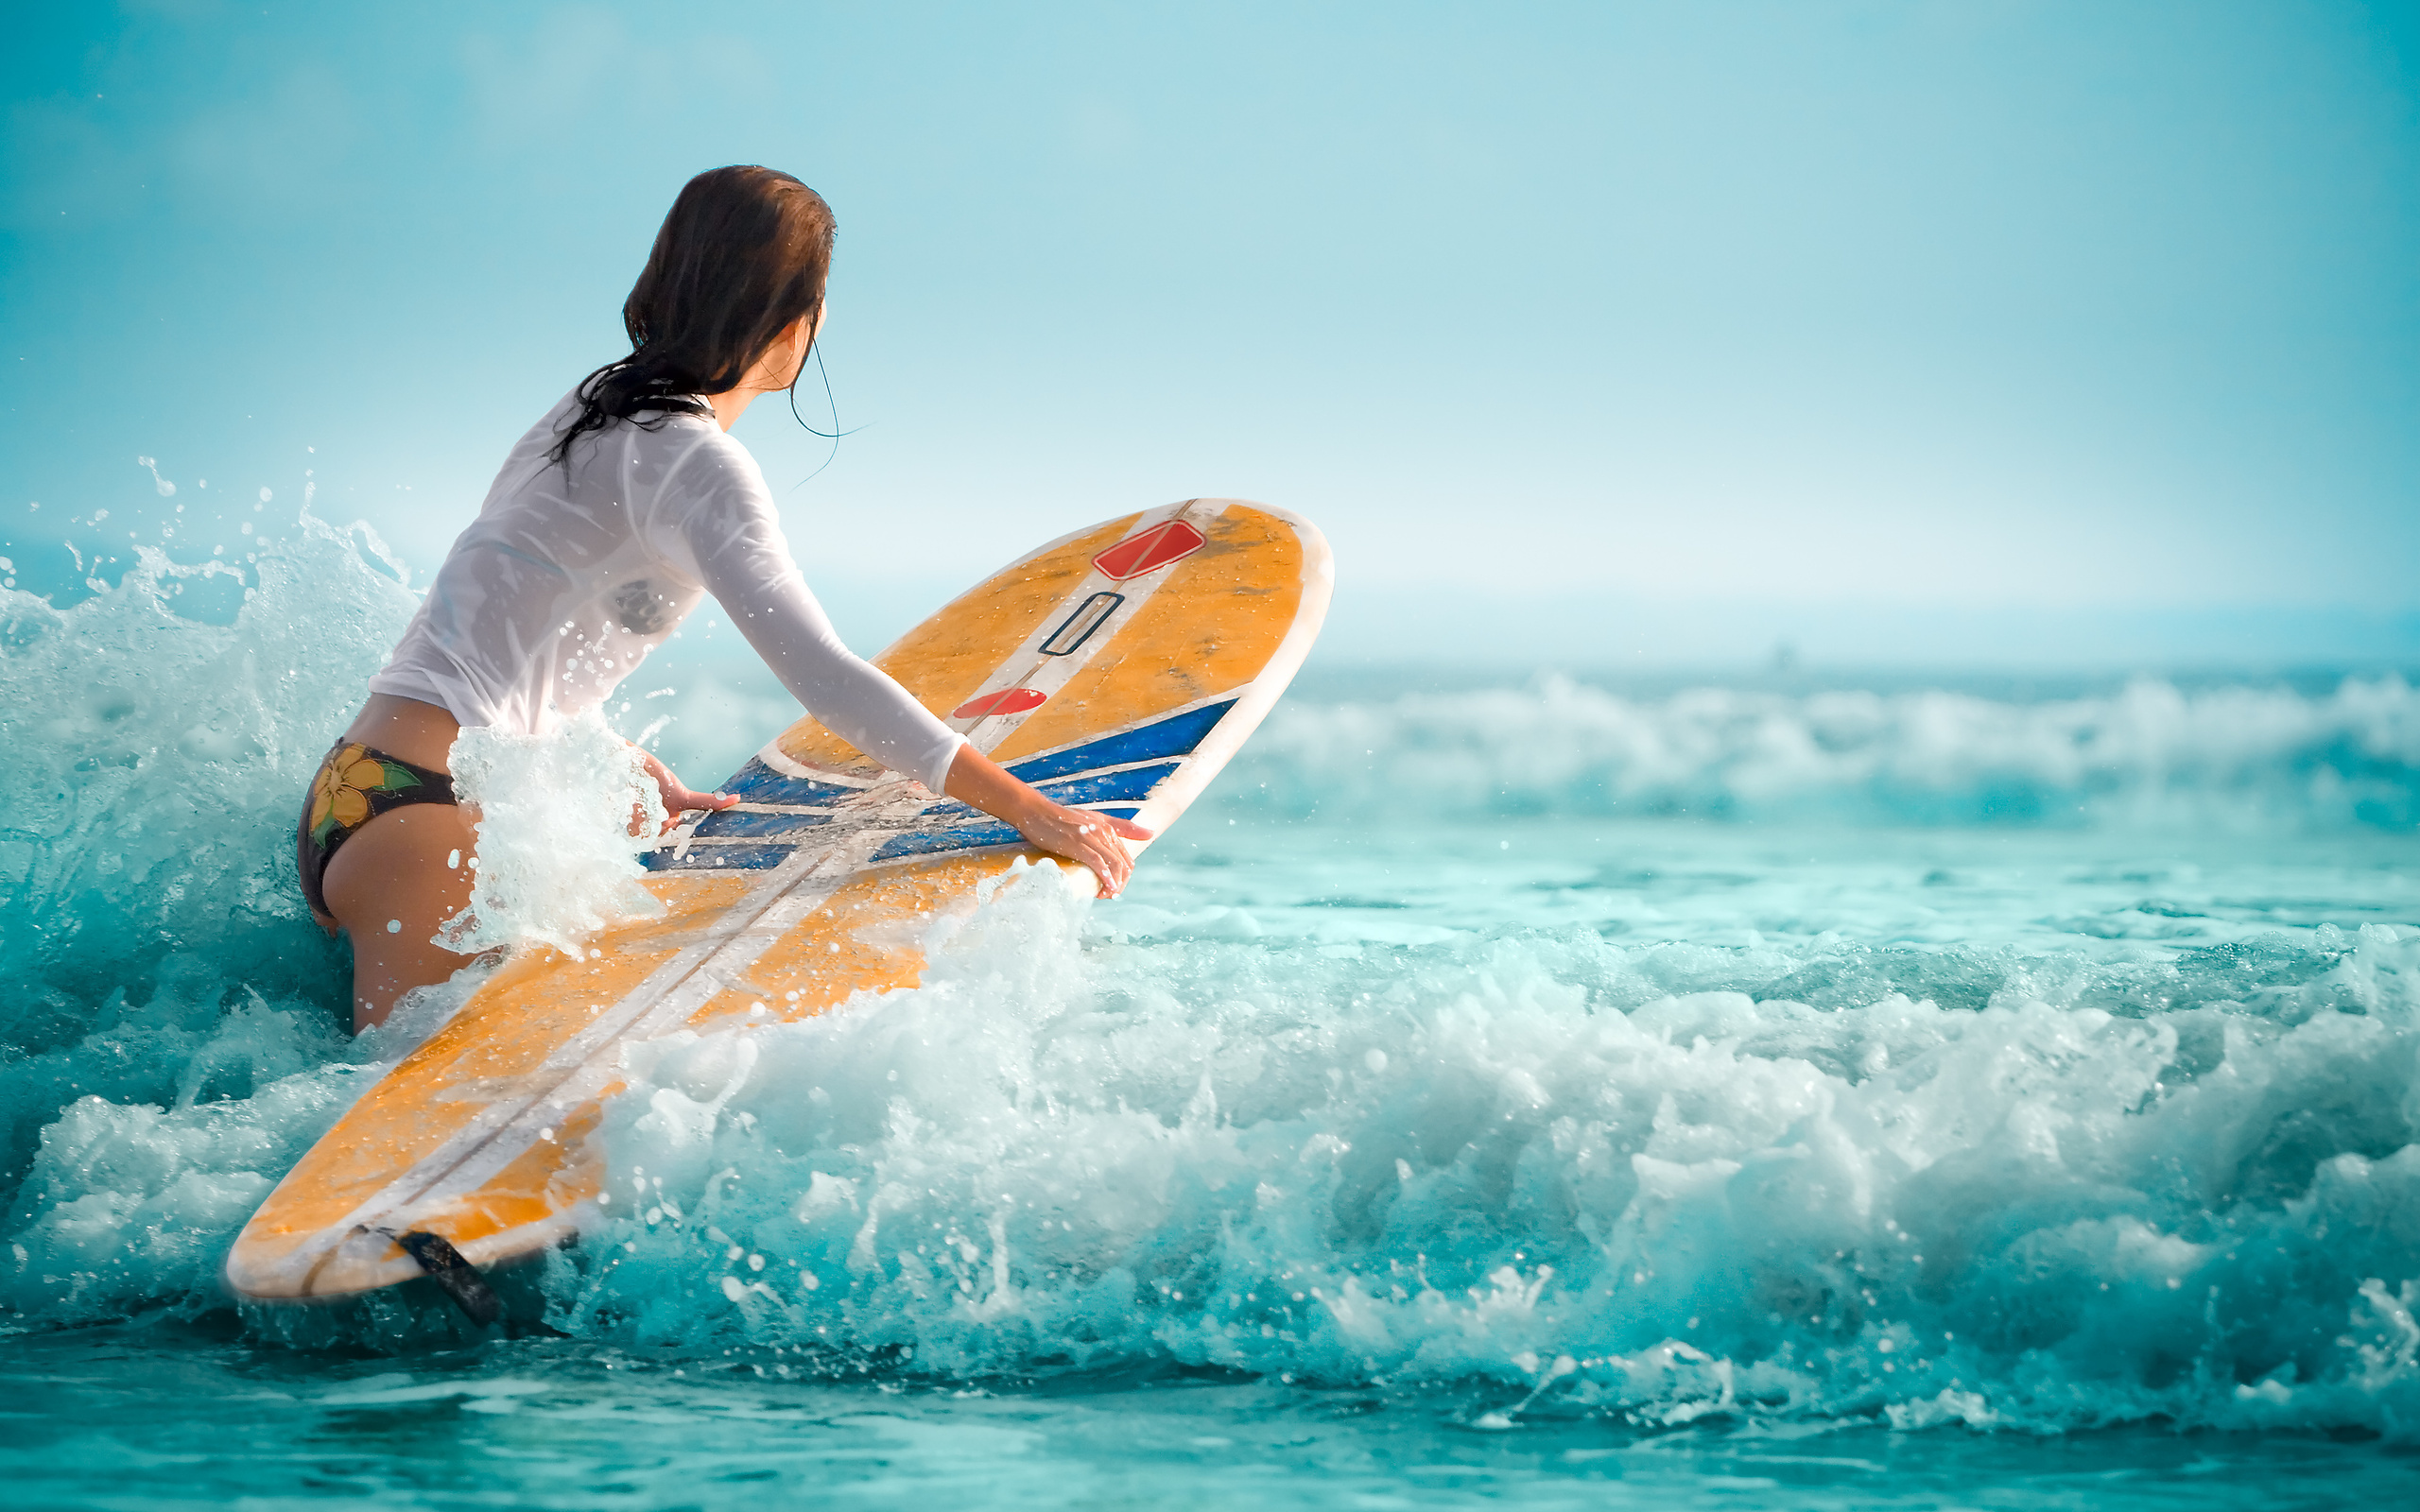 girl surfing wallpaper for computer walljpegcom 2560x1600